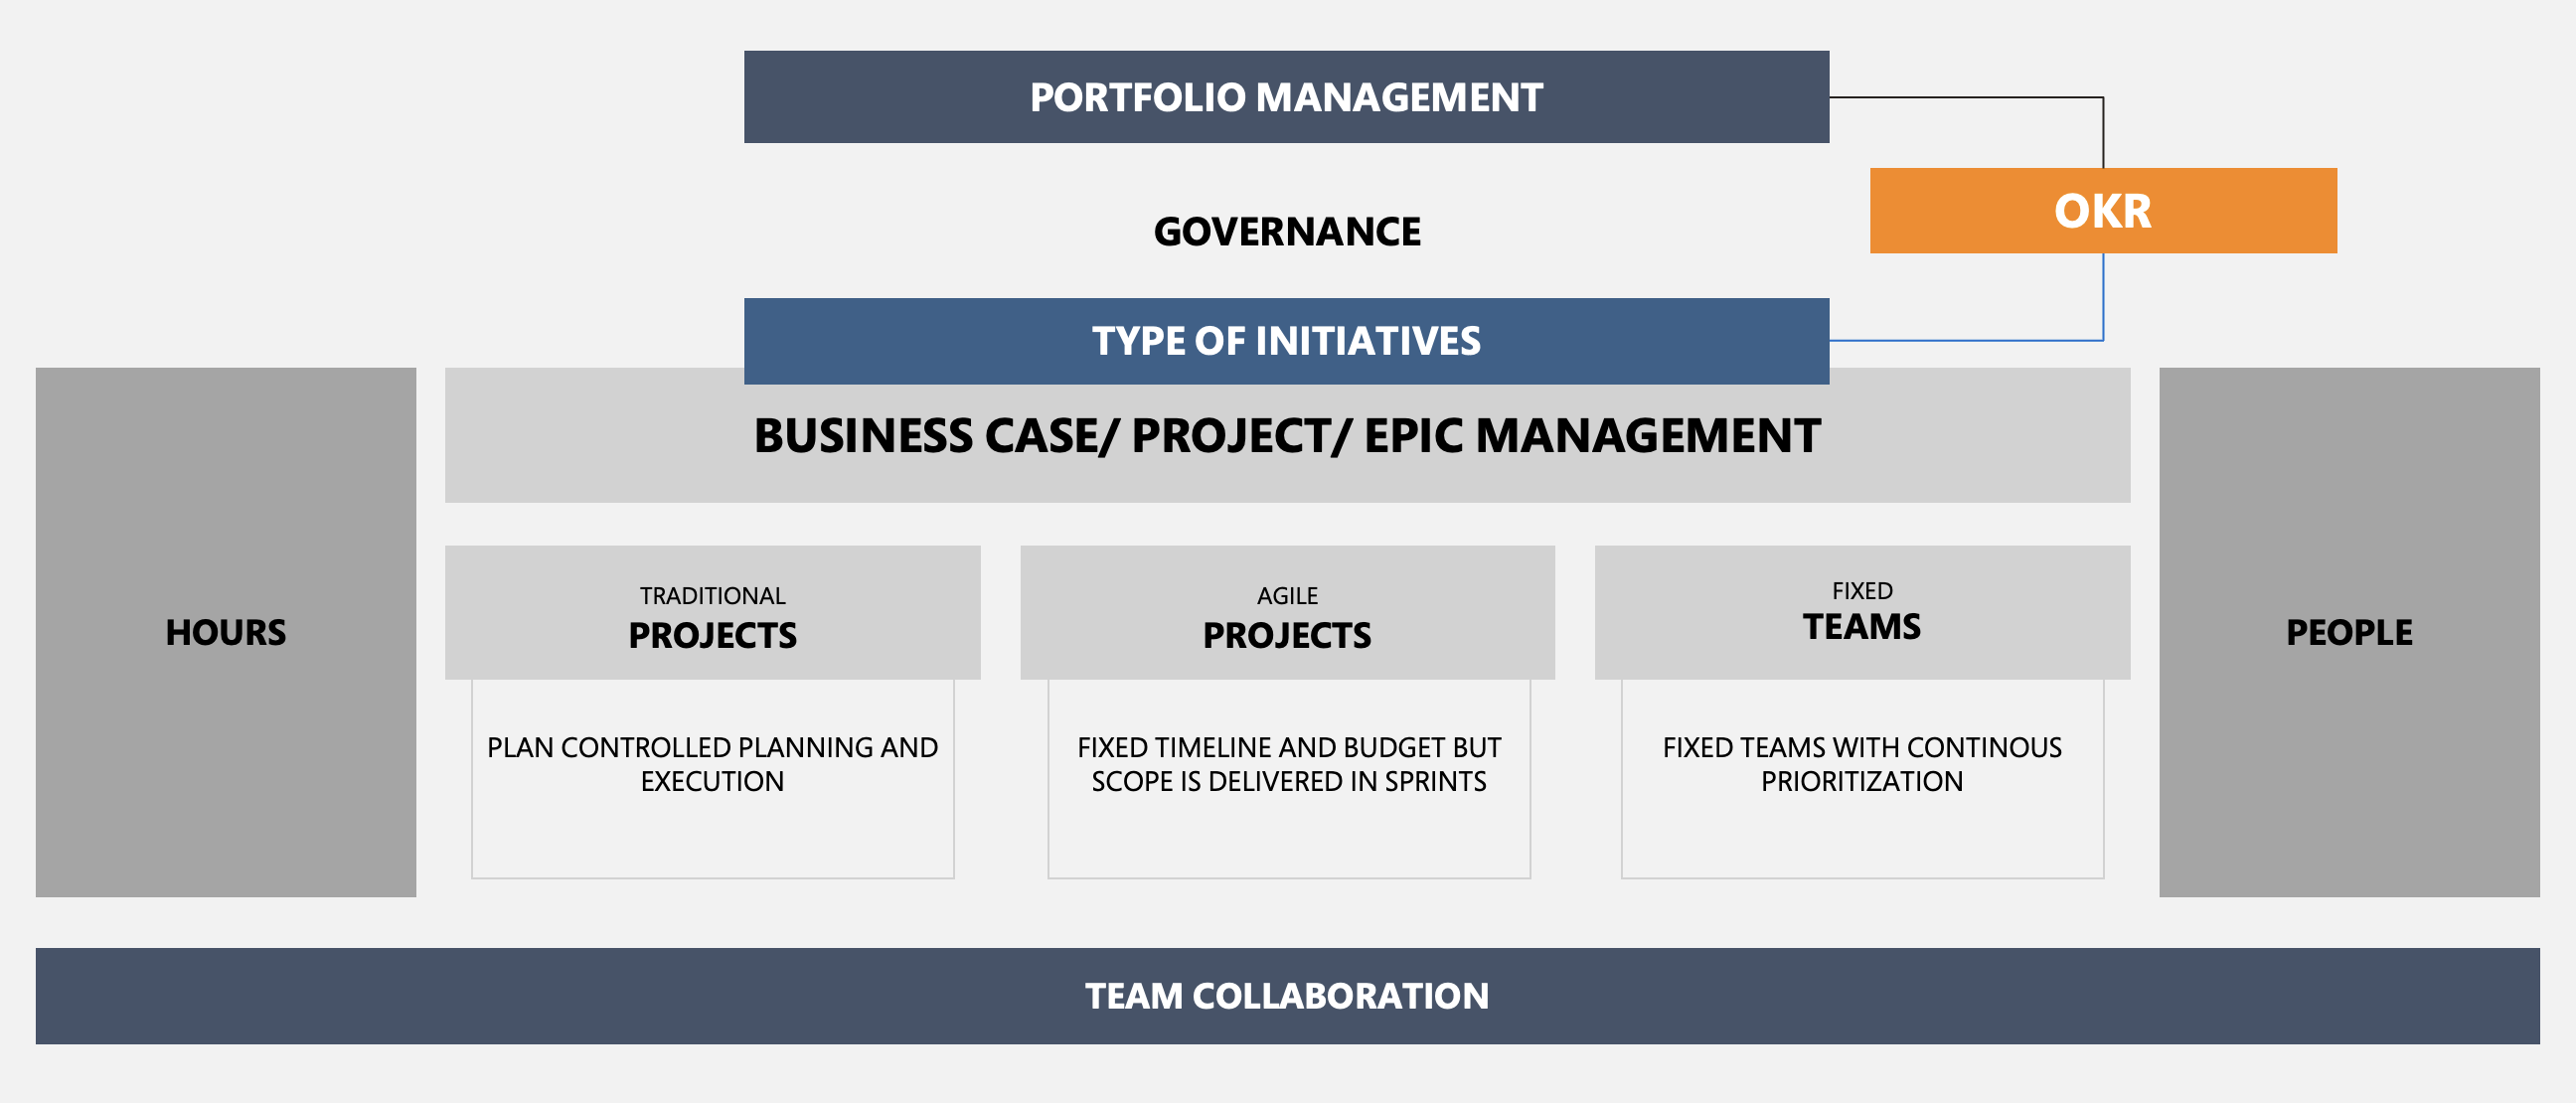 OKR in a PPM context